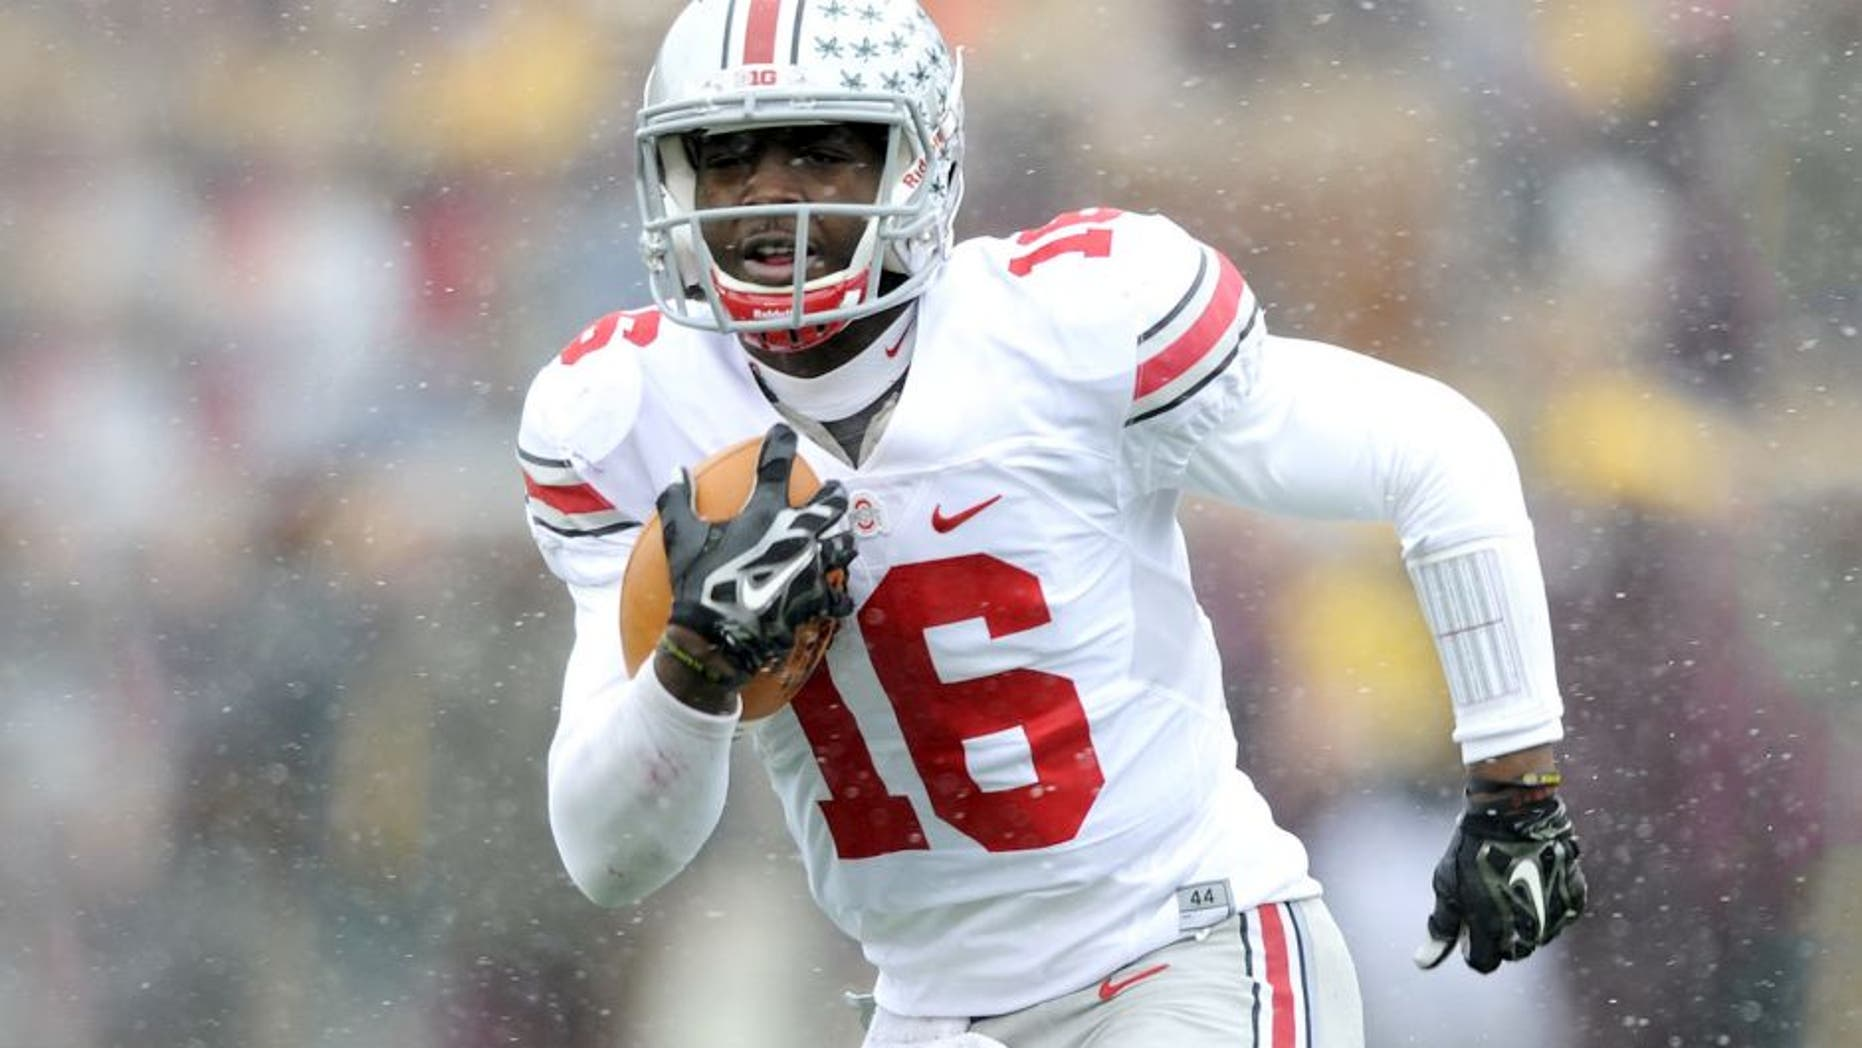 MINNEAPOLIS, MN - NOVEMBER 15: J.T. Barrett #16 of the Ohio State Buckeyes carries the football against the Minnesota Golden Gophers during the second quarter of the game on November 15, 2014 at TCF Bank Stadium in Minneapolis, Minnesota. (Photo by Hannah Foslien/Getty Images)